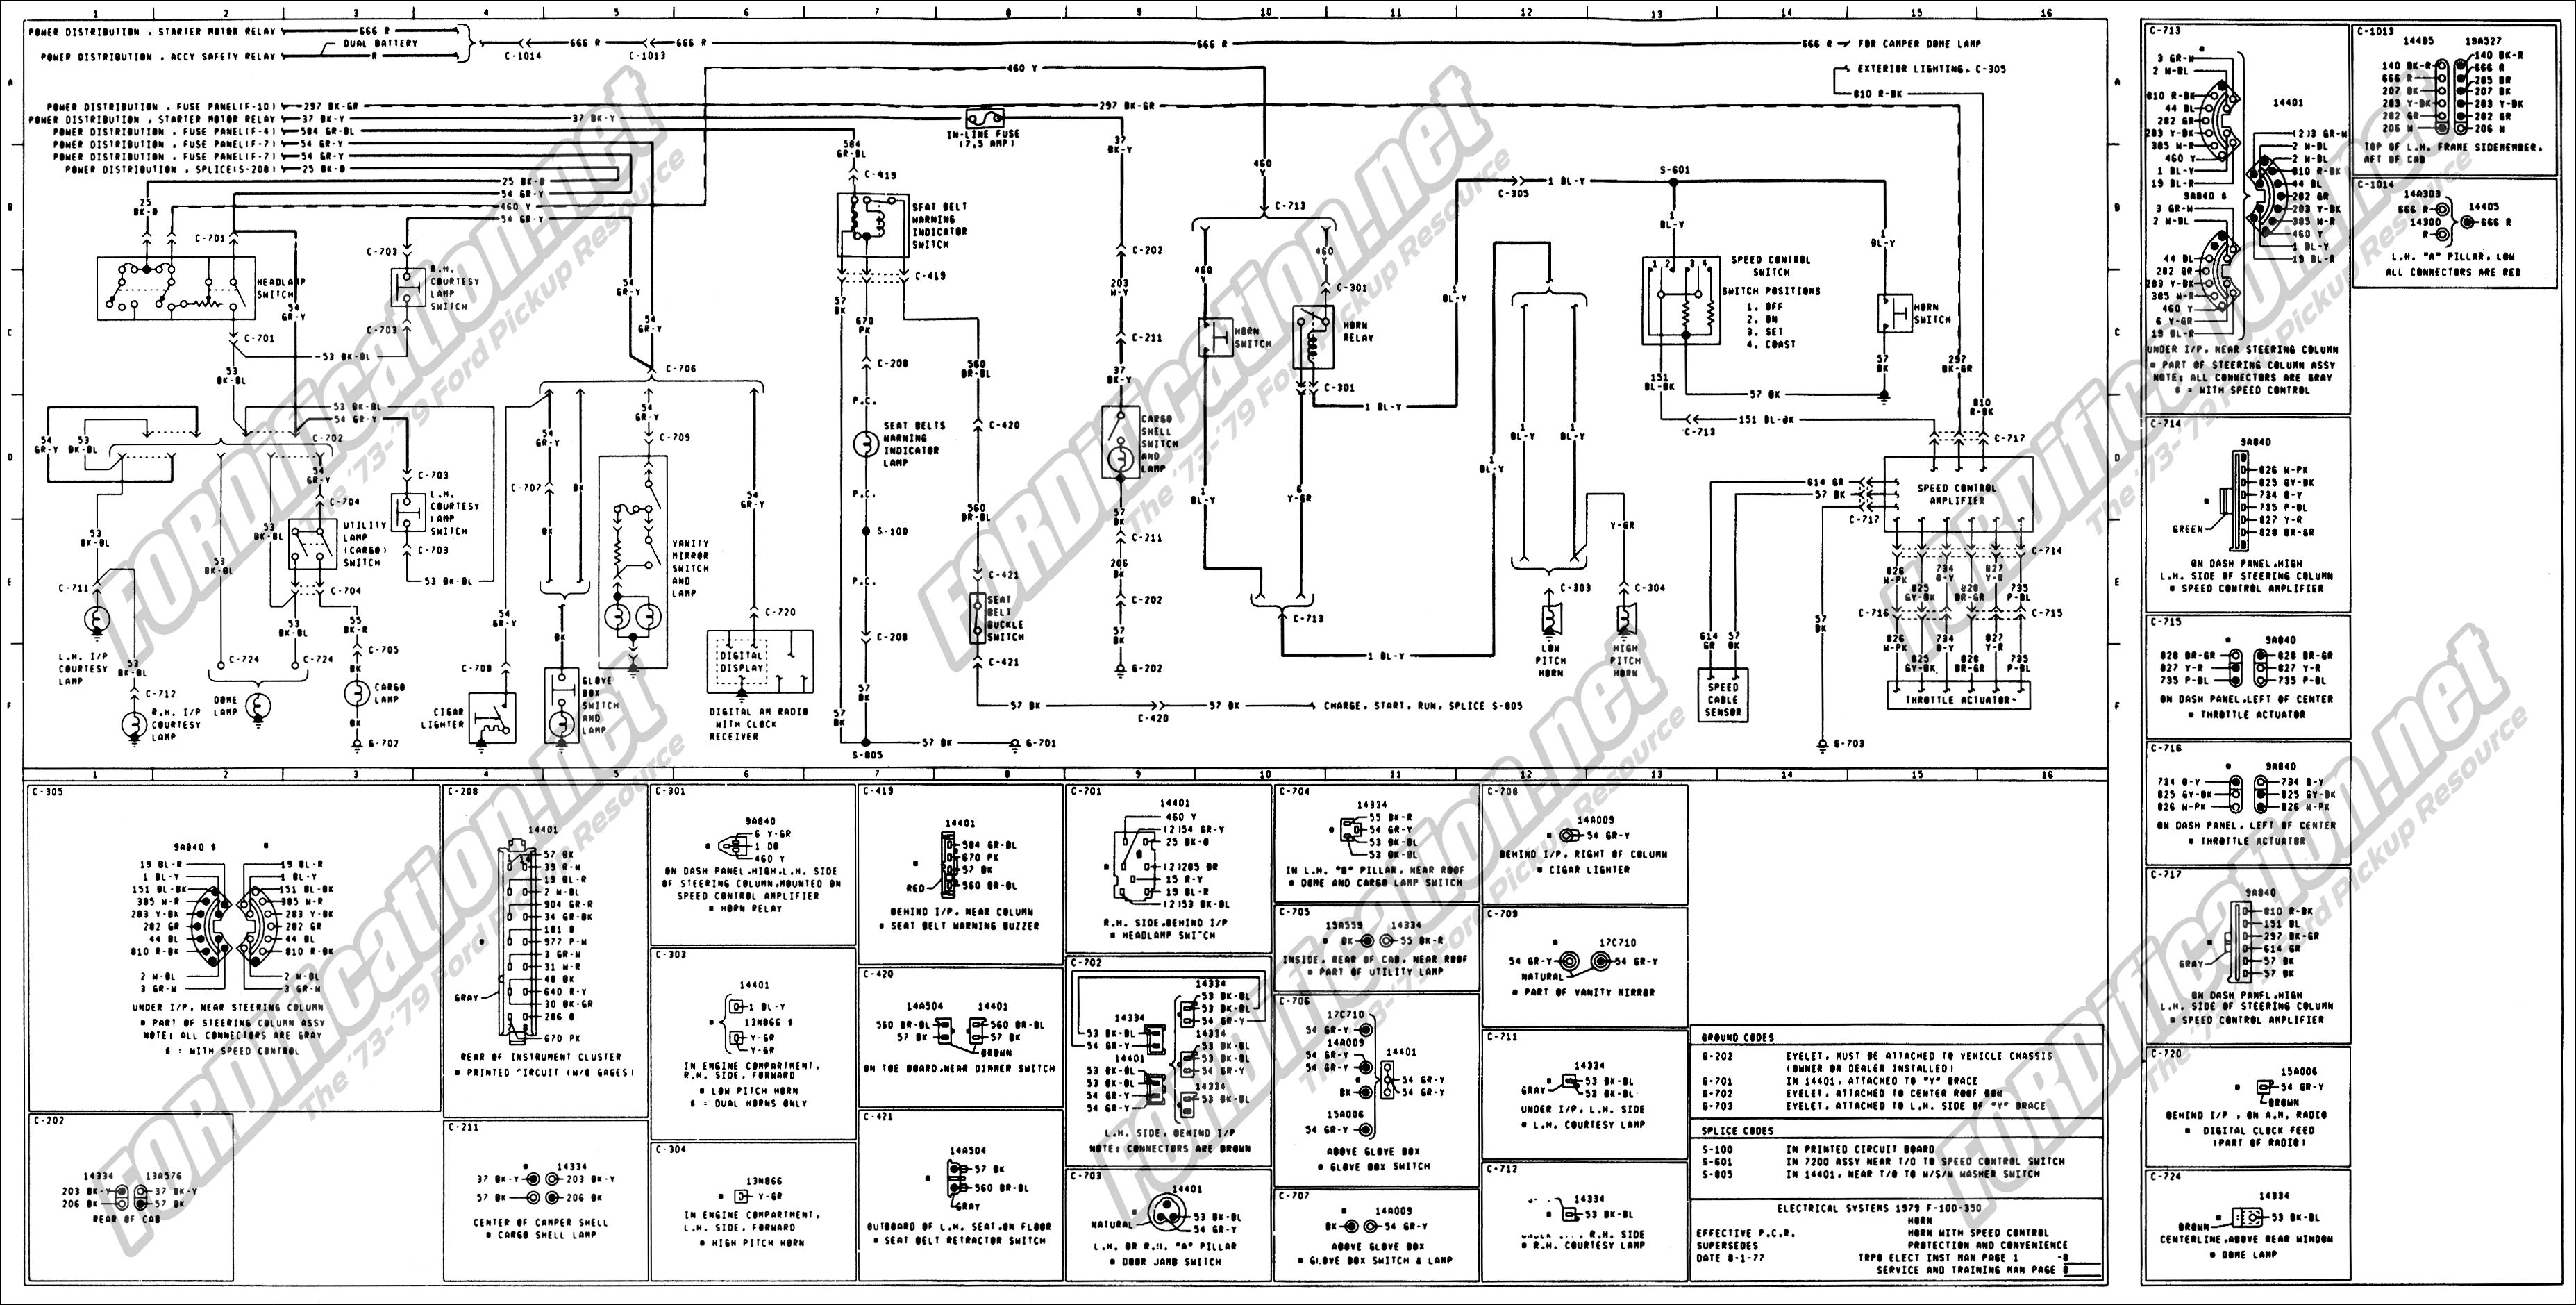 wiring_79master_8of9 1973 1979 ford truck wiring diagrams & schematics fordification net 2008 Ford F550 Fuse Diagram at pacquiaovsvargaslive.co